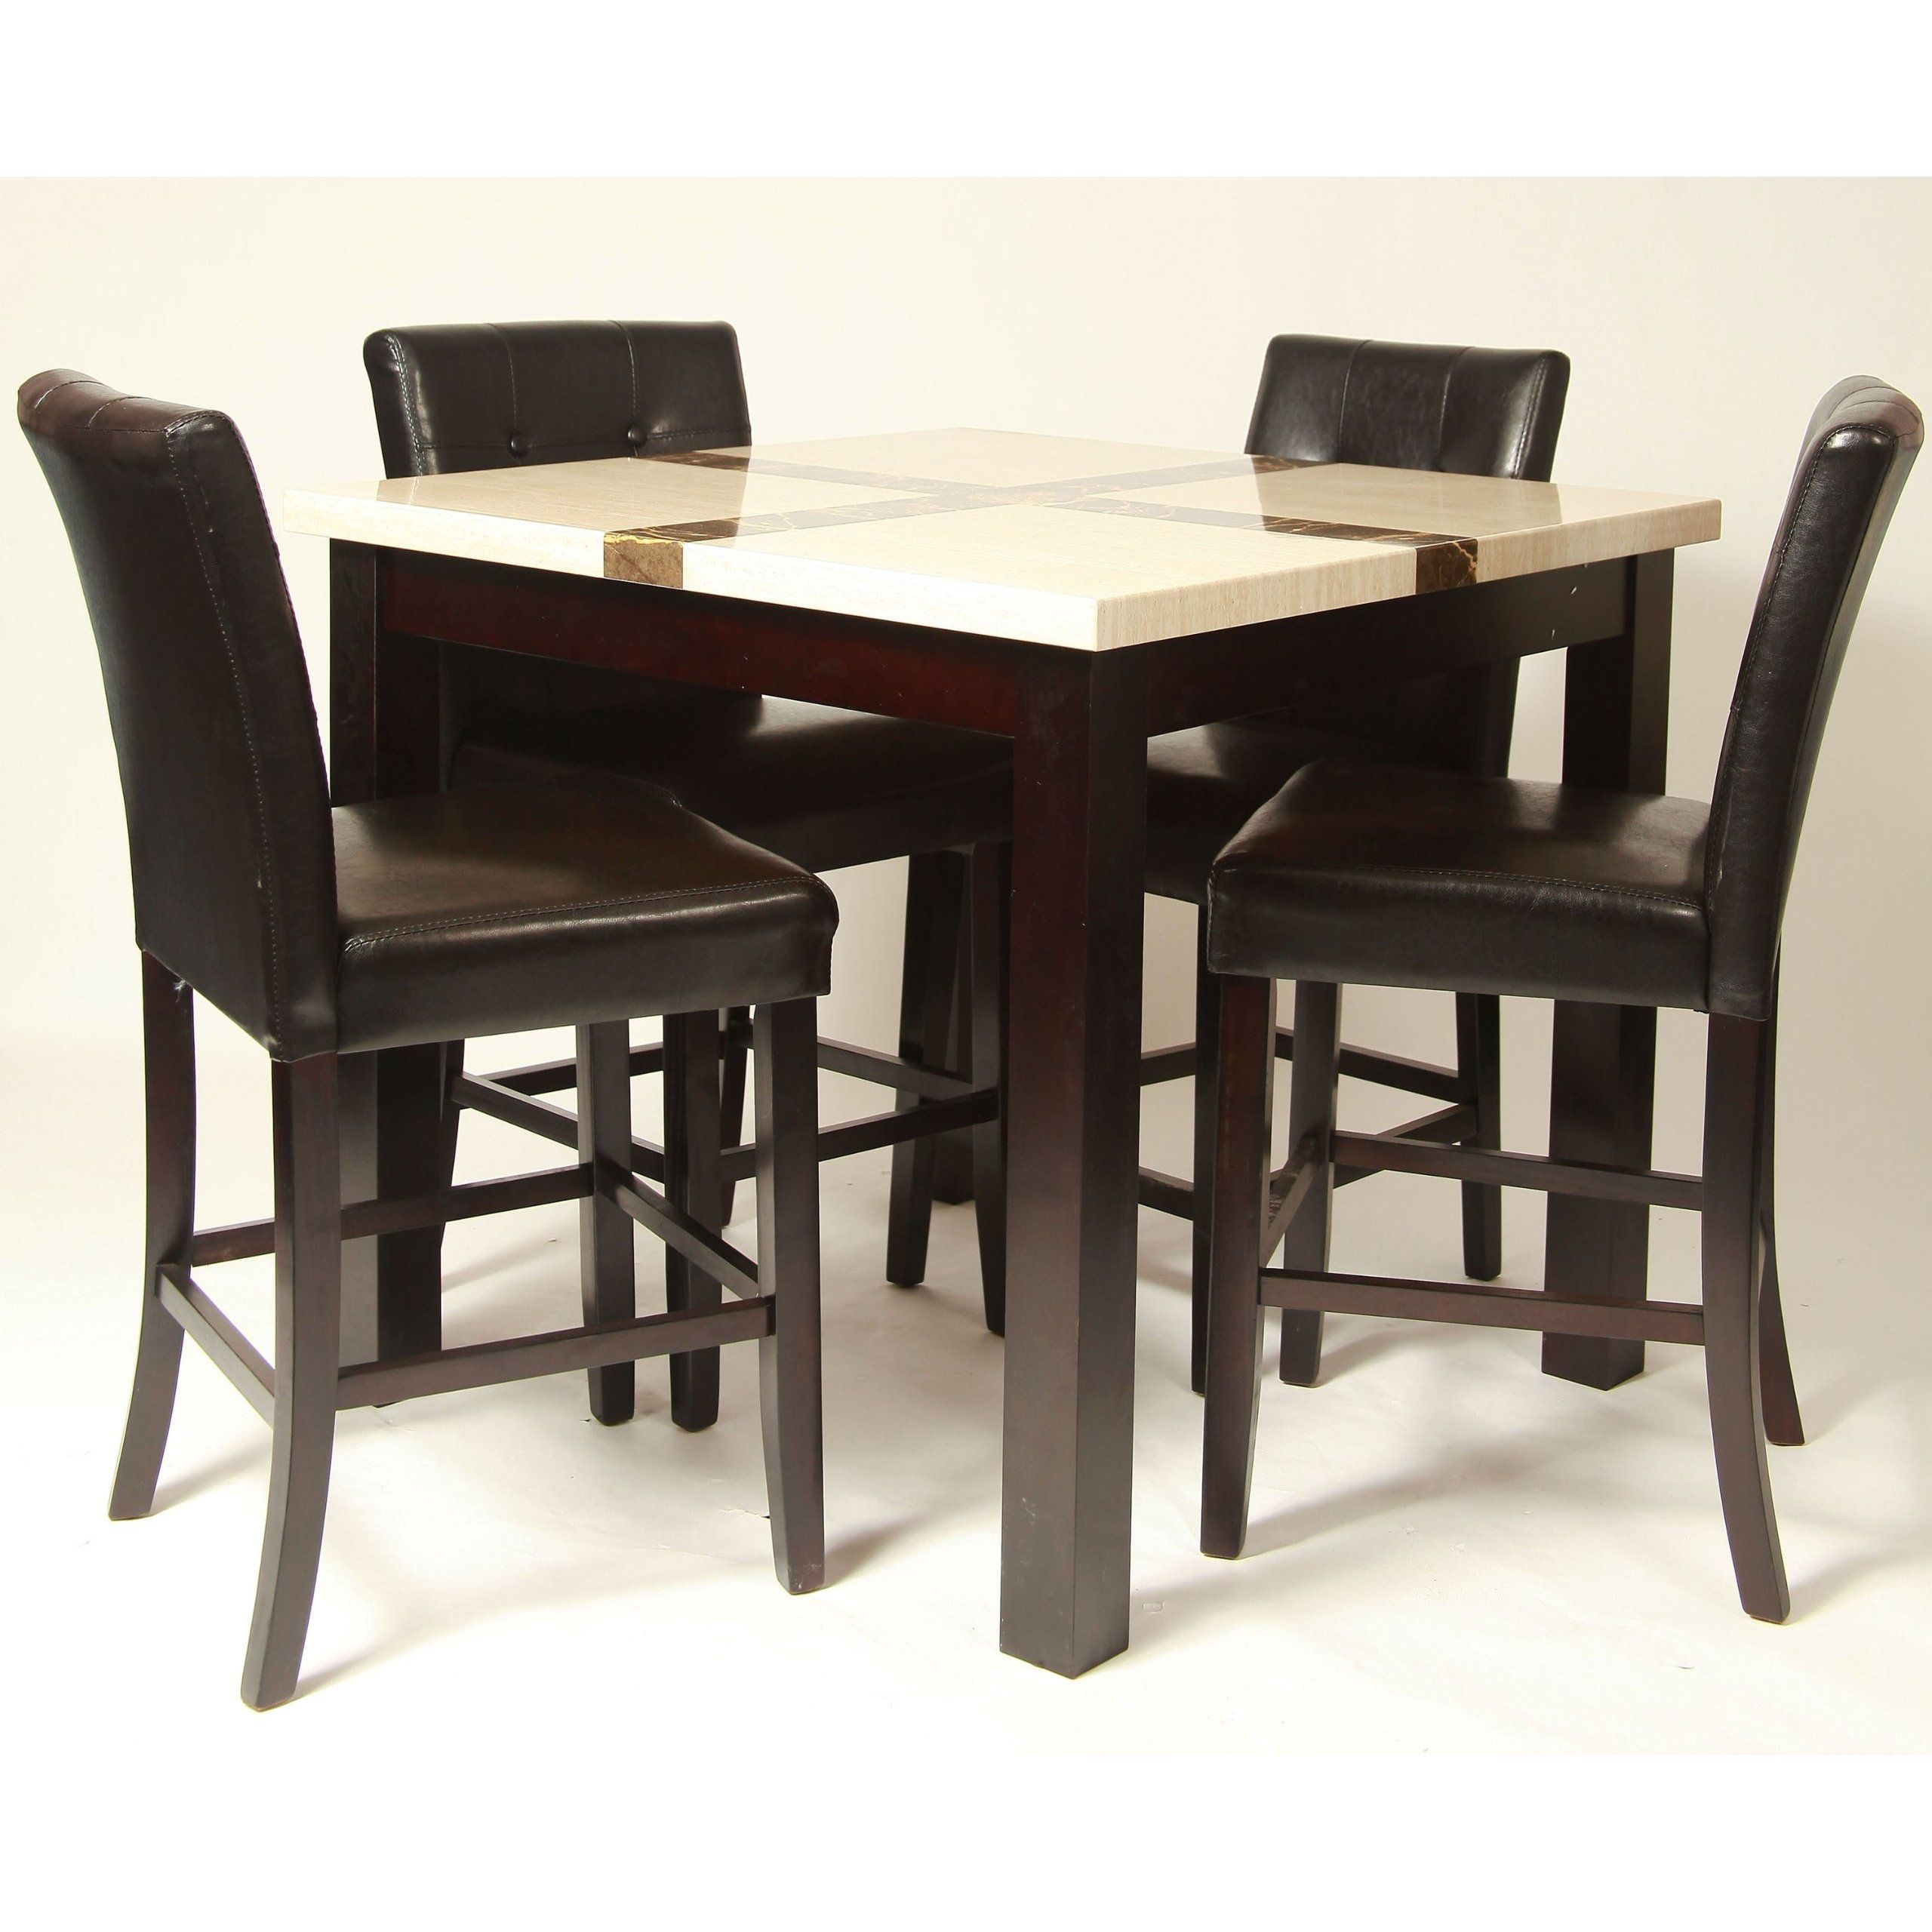 All Wood Dining Room Sets: 5 Piece Artificial Light Oak Marble Bar Set , Table With 4